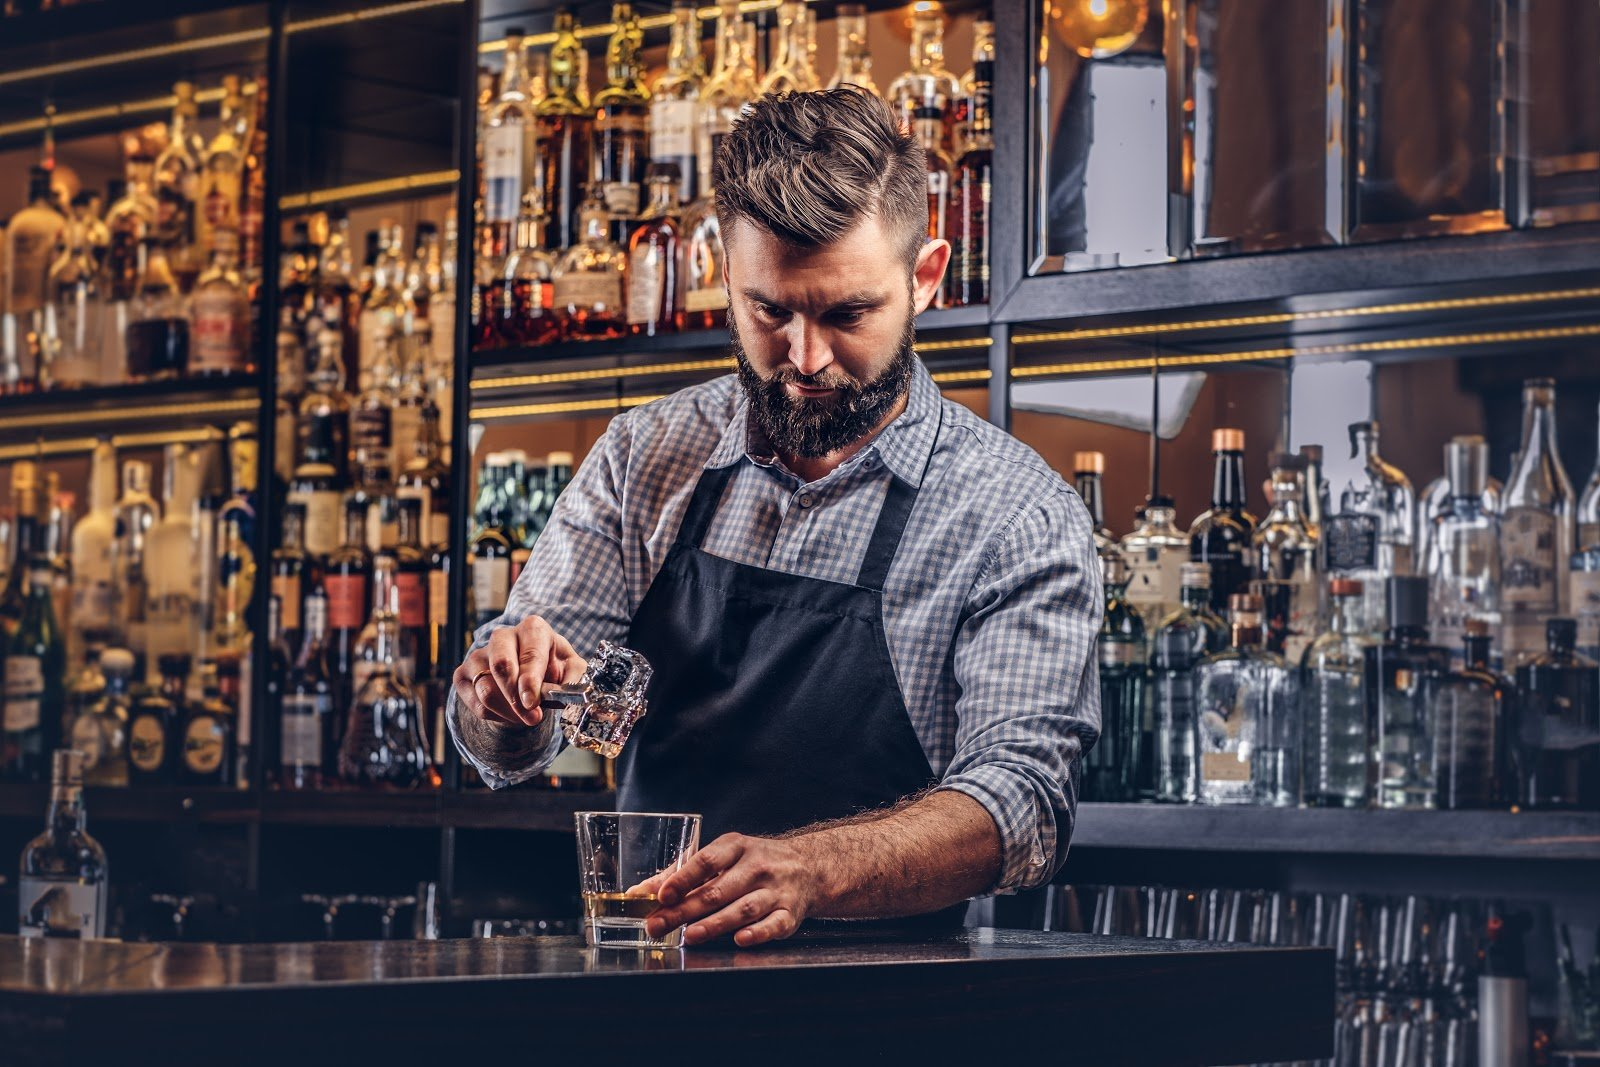 Bartender pours shot into glass